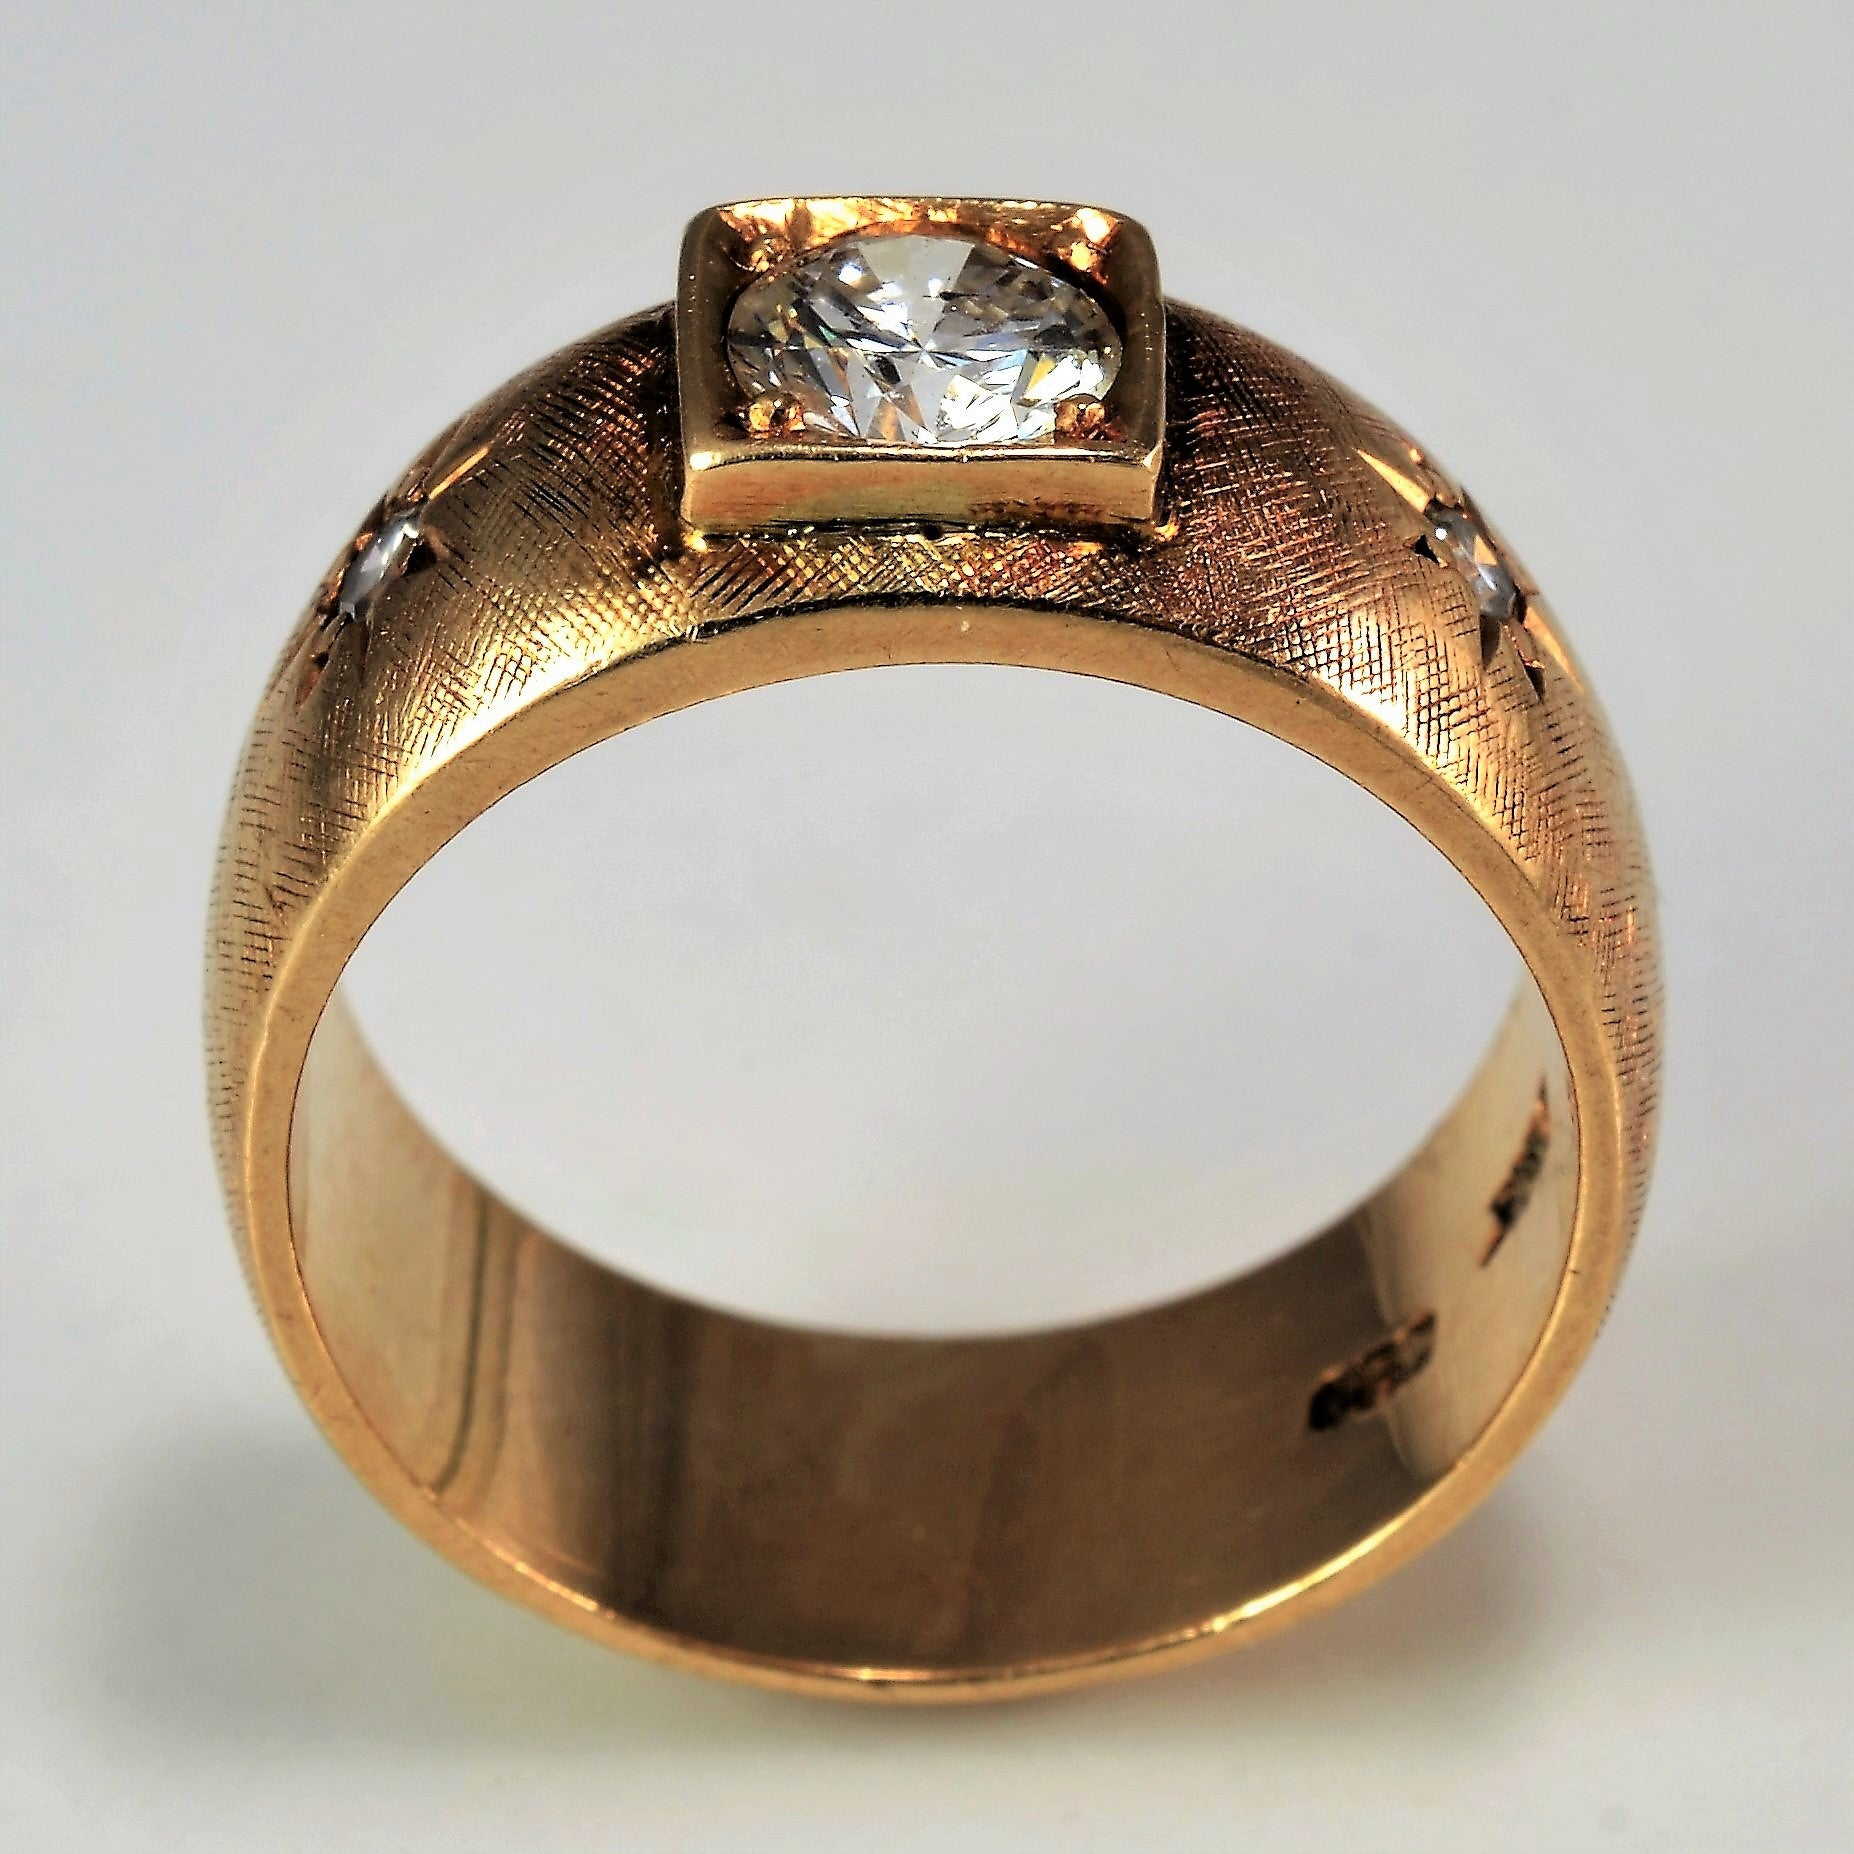 Vintage Wide Band Engagement Ring | 0.41 ctw, SZ 4.75 |